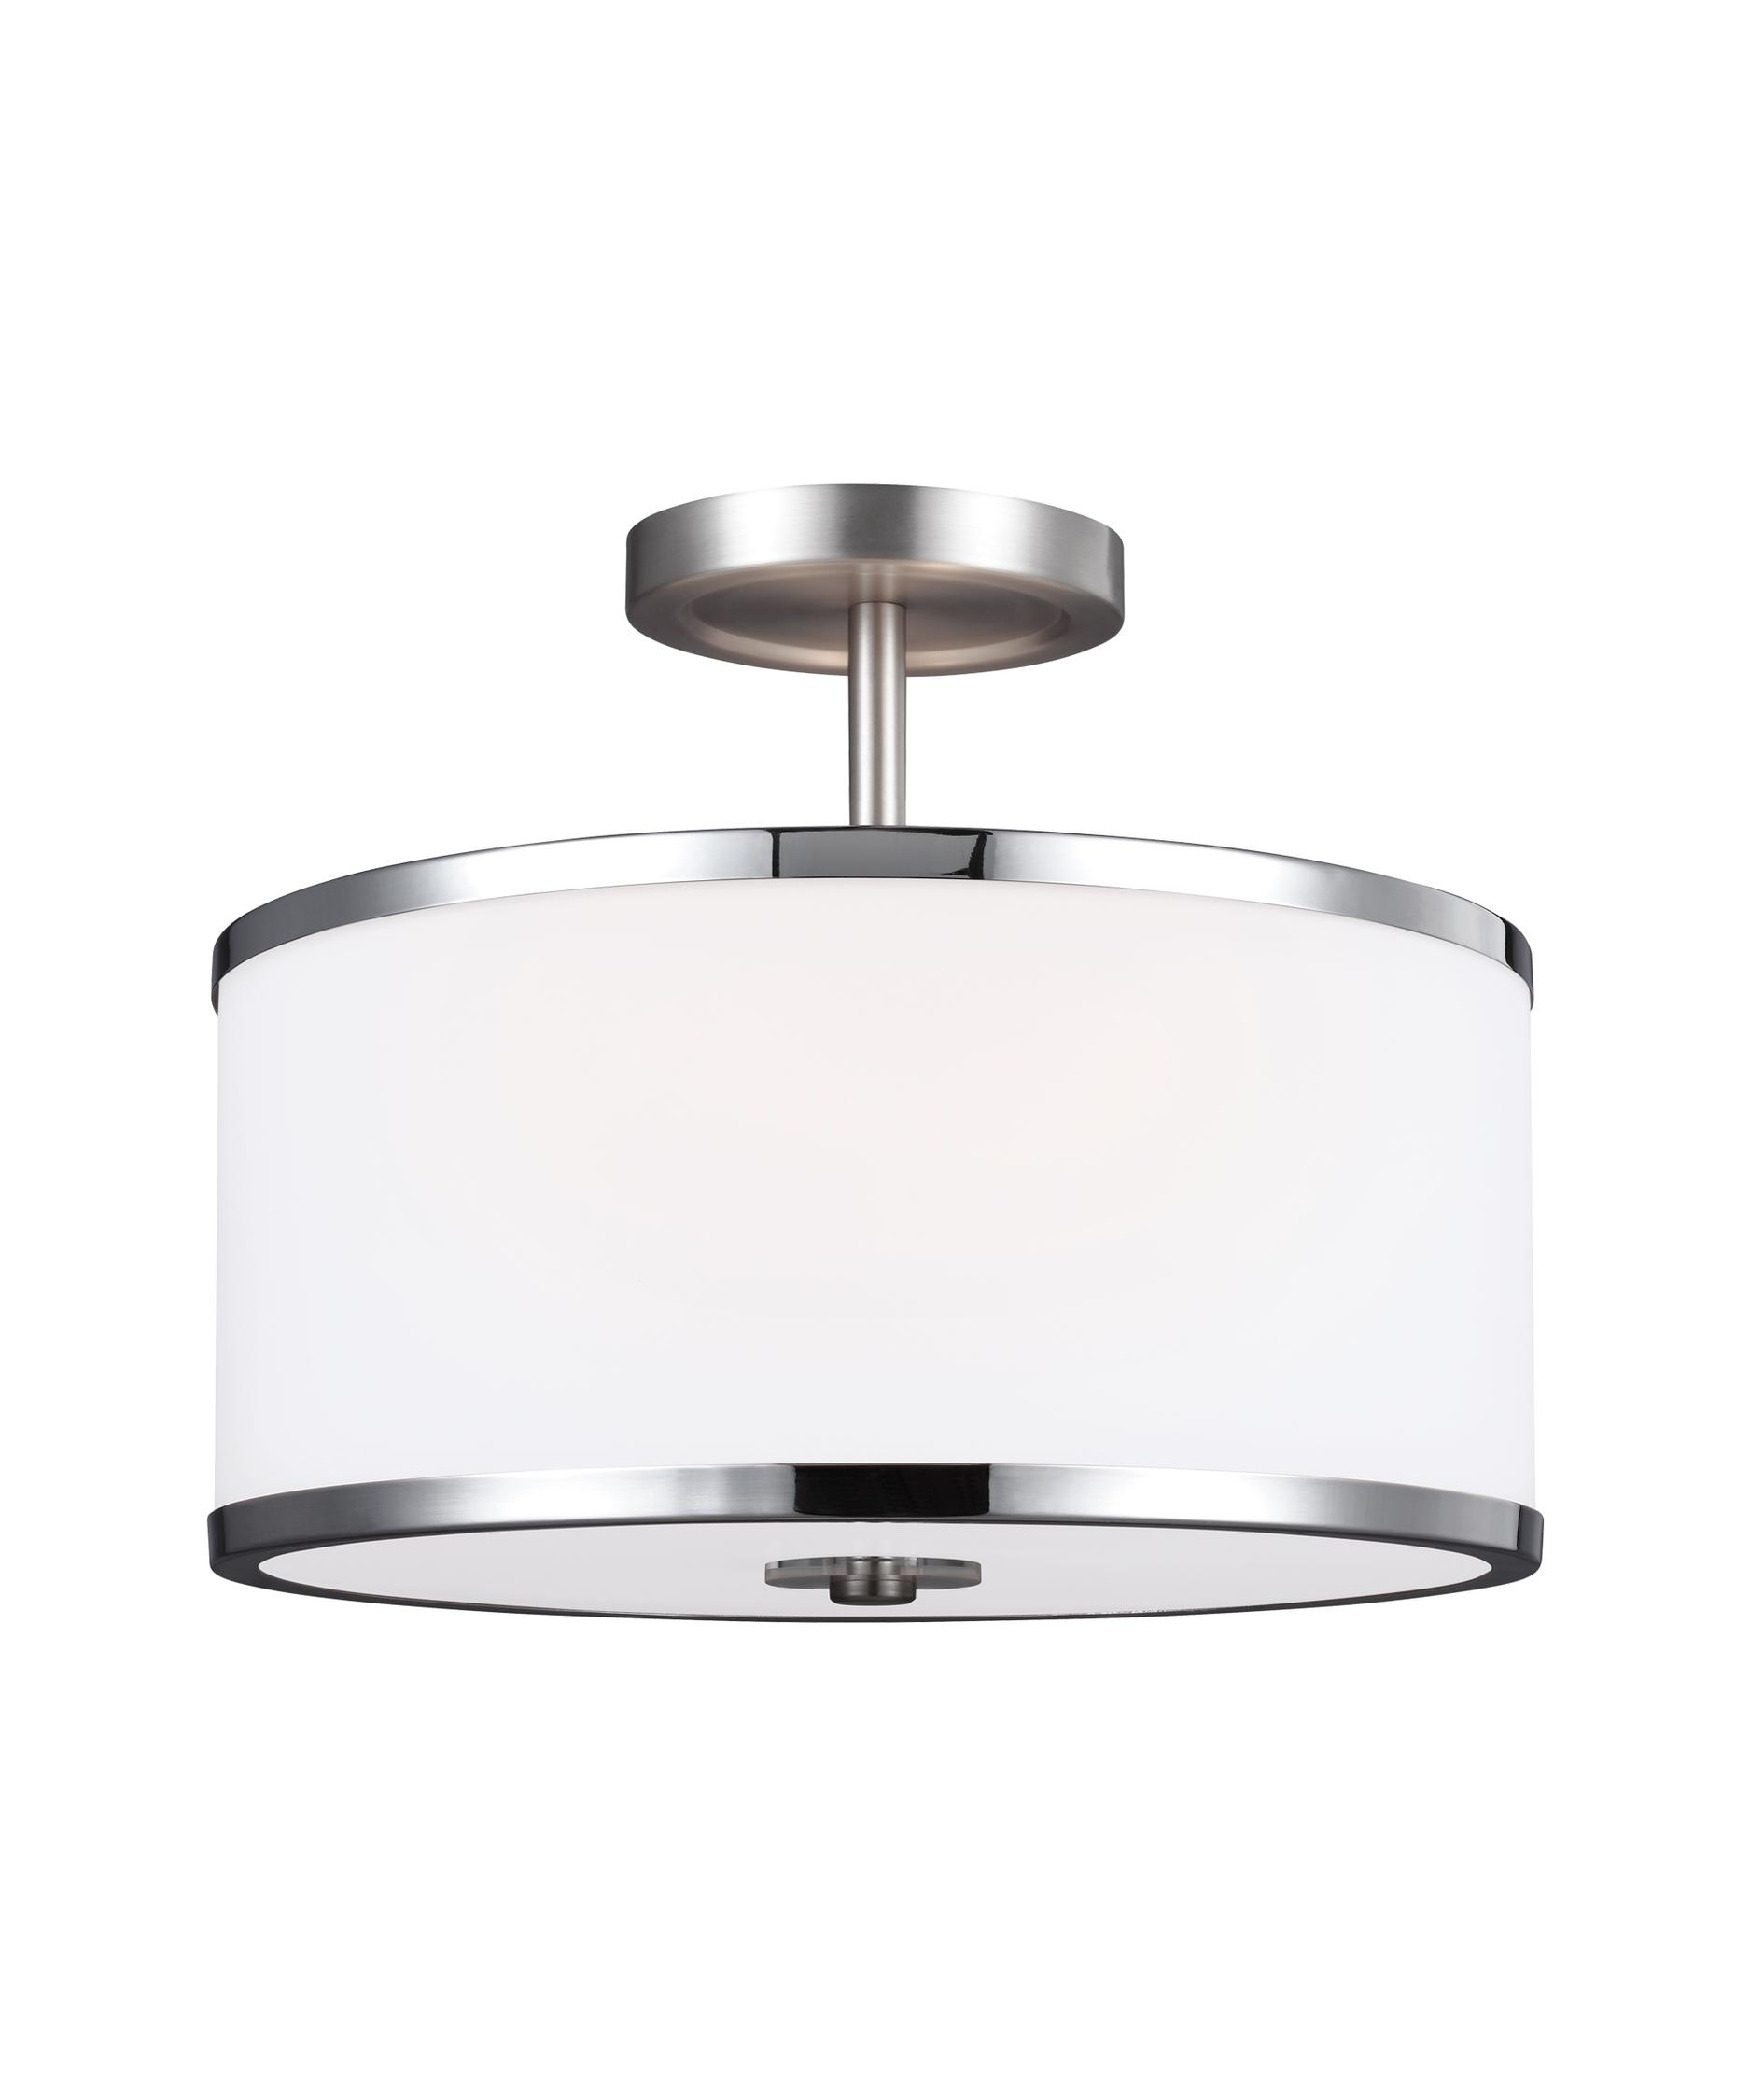 murray feiss sf335 prospect park 13 inch wide semi flush mount